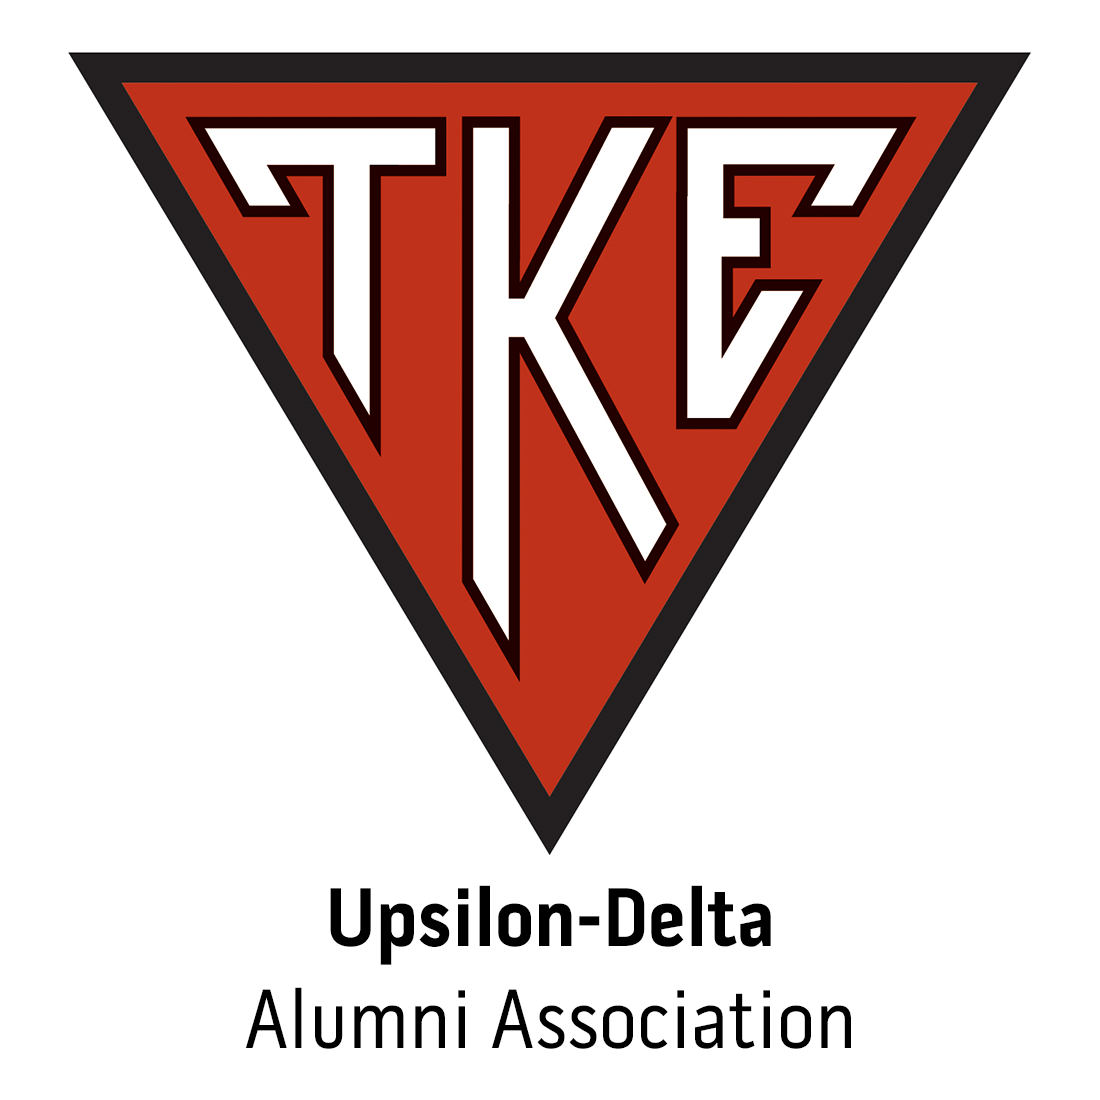 Upsilon-Delta Alumni Association at Saginaw Valley State University